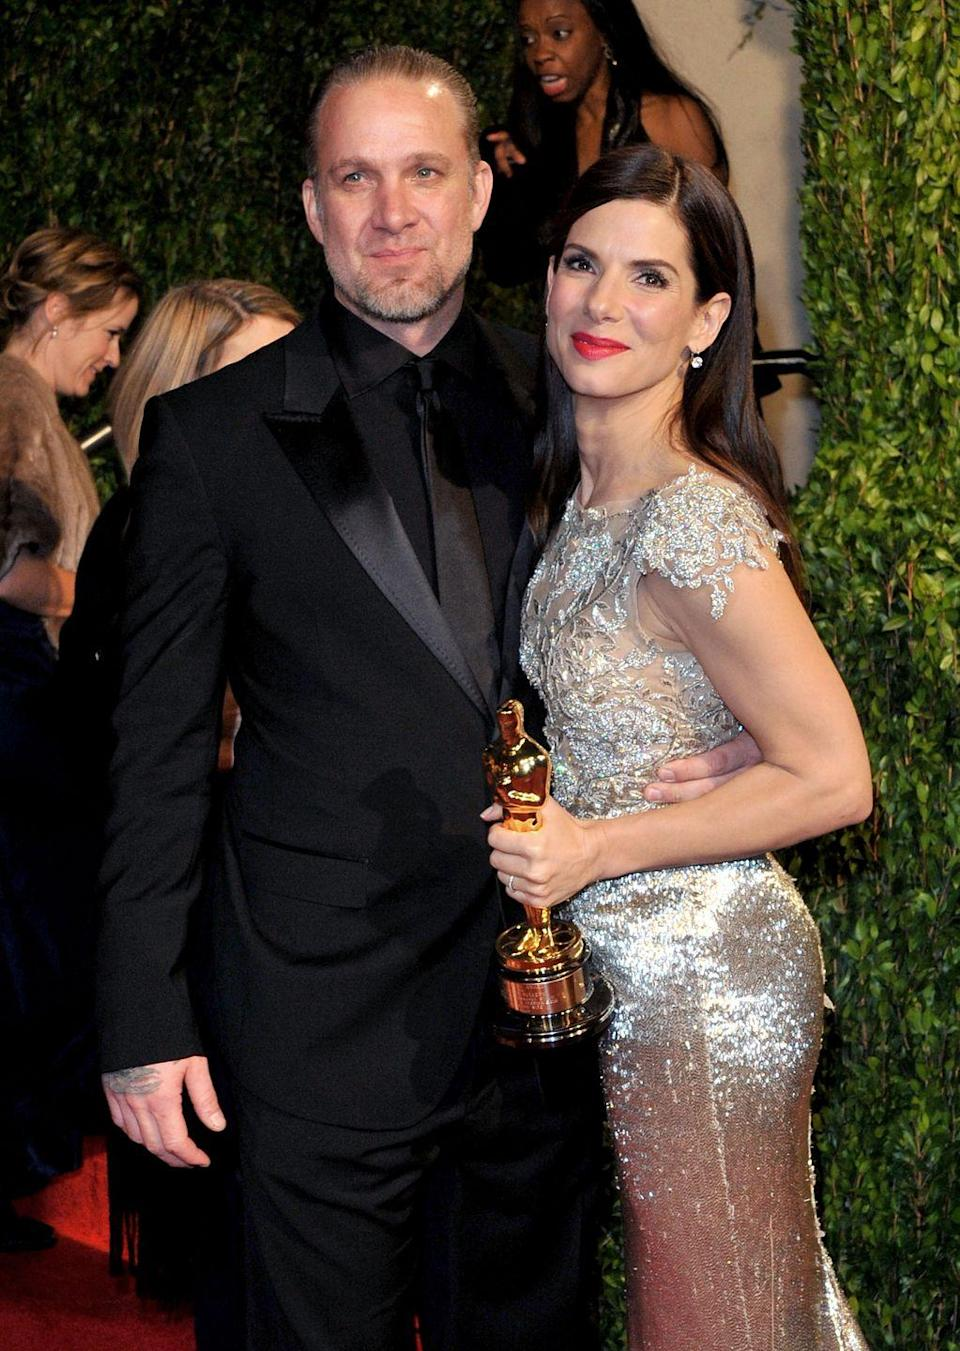 "<p>In 2010, at least four women came forward to say they had affairs with James while he was still married to Sandra Bullock. In an interview with the <em><a href=""http://www.dailymail.co.uk/news/article-4309988/No-regrets-says-Sandra-Bullock-s-cheating-ex-Jesse-James.html"" rel=""nofollow noopener"" target=""_blank"" data-ylk=""slk:Daily Mail"" class=""link rapid-noclick-resp"">Daily Mail</a>, </em>James admitted to cheating. ""Yeah, I did cheat on my wife, yeah, I stood up and took accountability for it and apologized. And that's the end of story,"" he said.</p>"